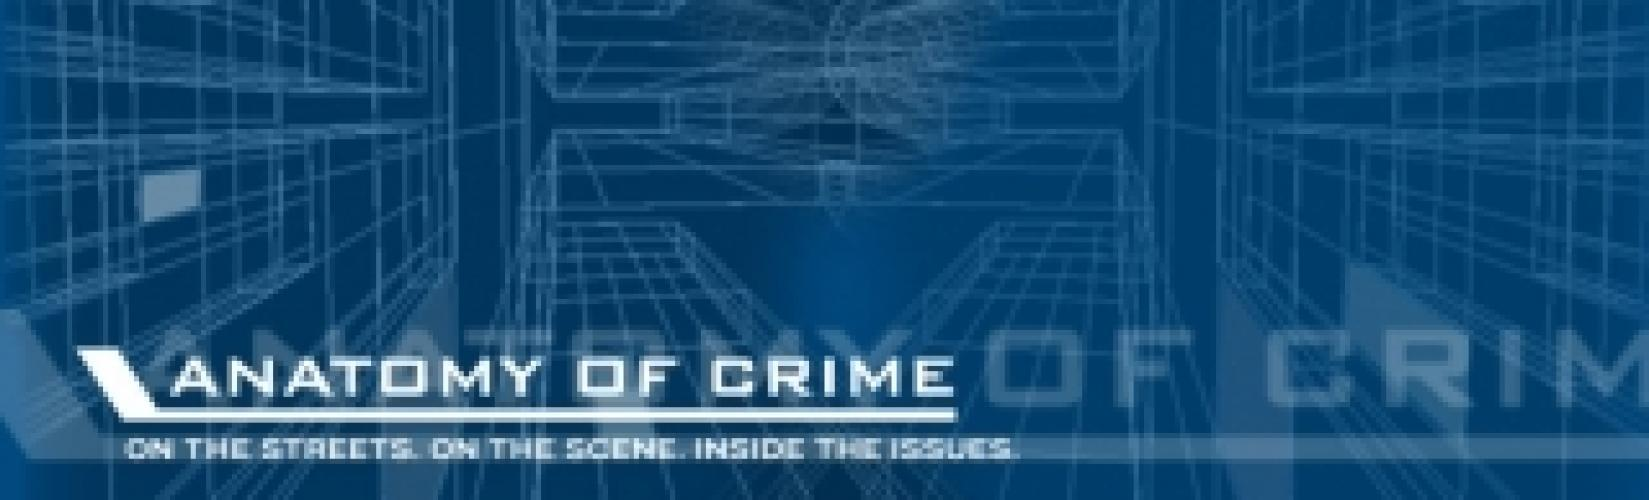 Anatomy Of Crime next episode air date poster